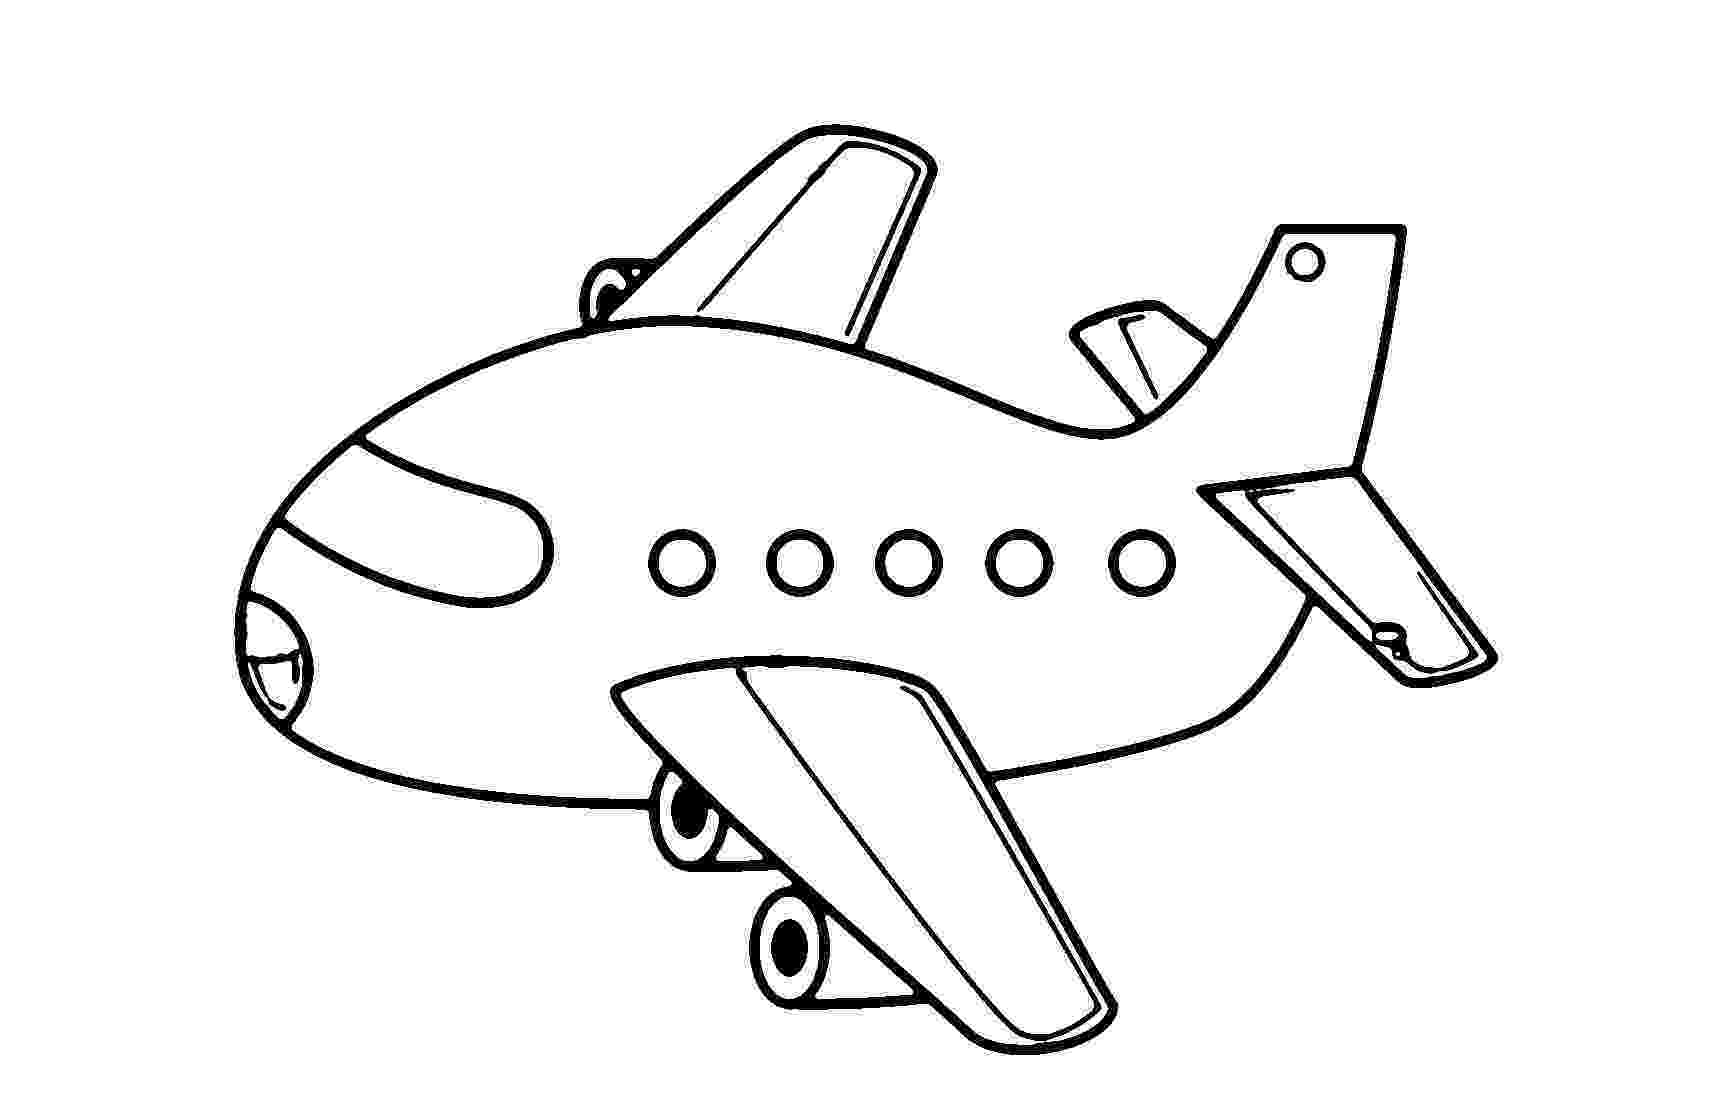 aeroplane coloring coloring pages for kids airplane coloring pages coloring aeroplane